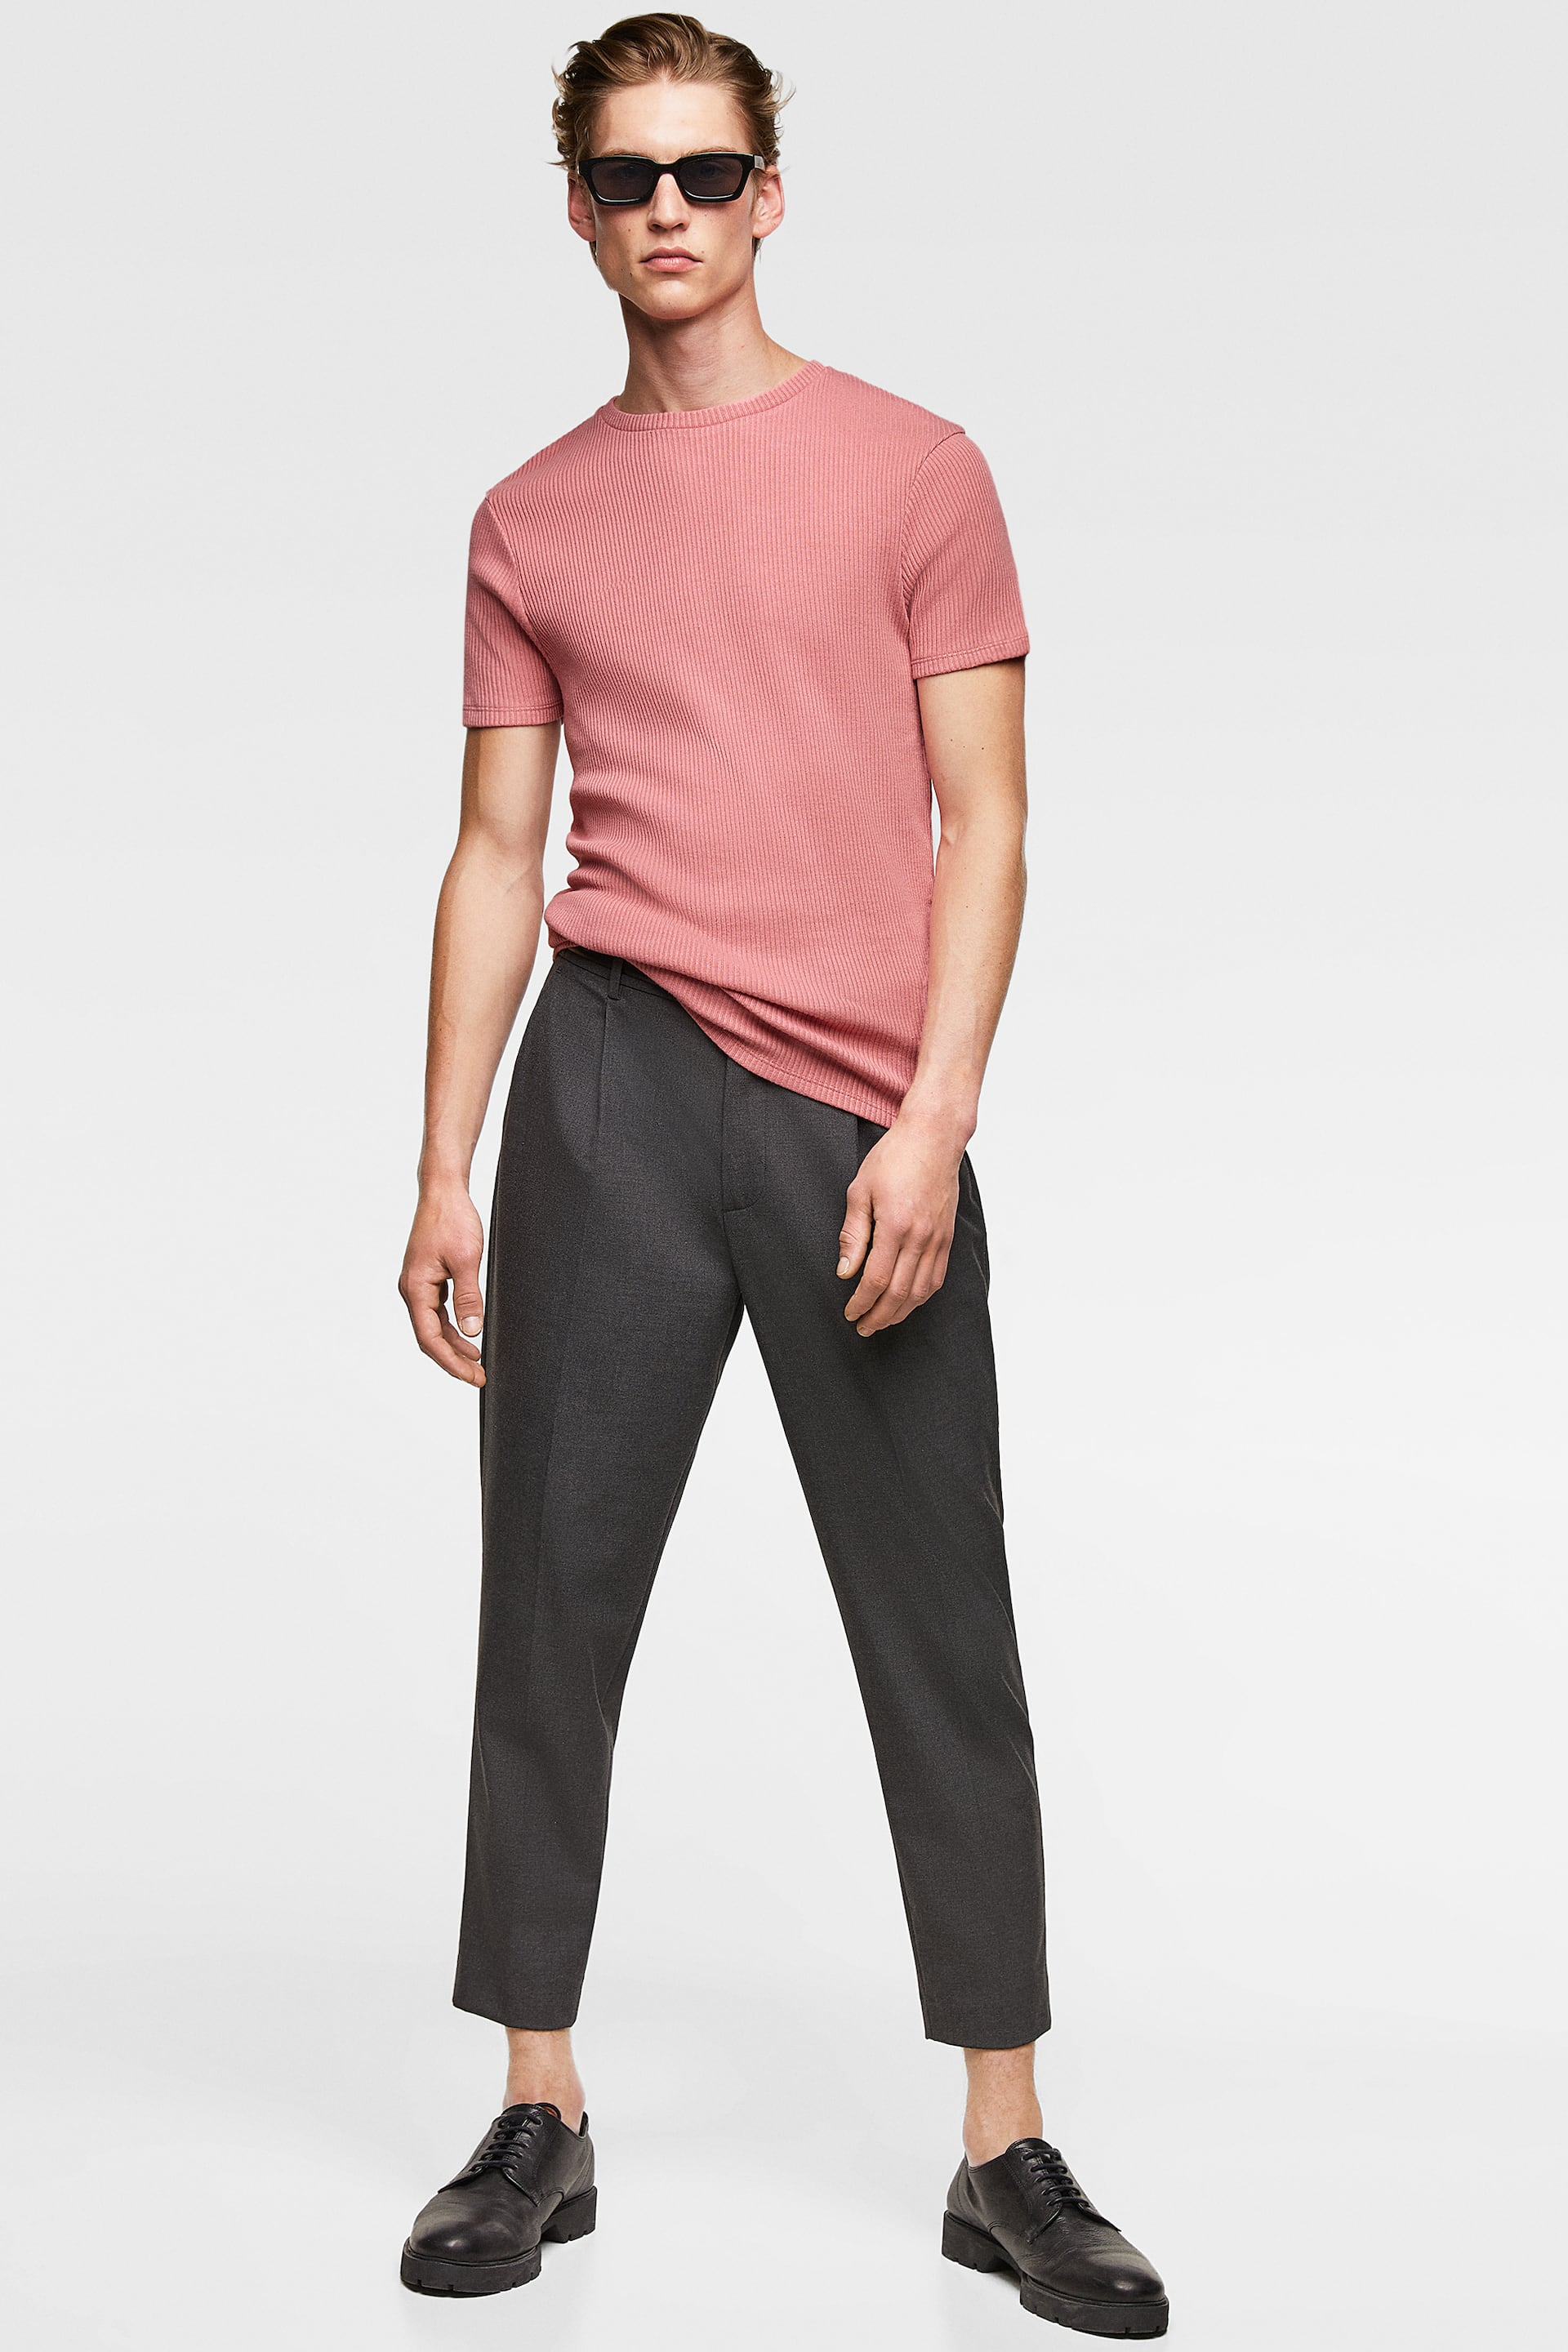 444014eb Zara MUSCLE FIT RIBBED SWEATER at £22.99 | love the brands